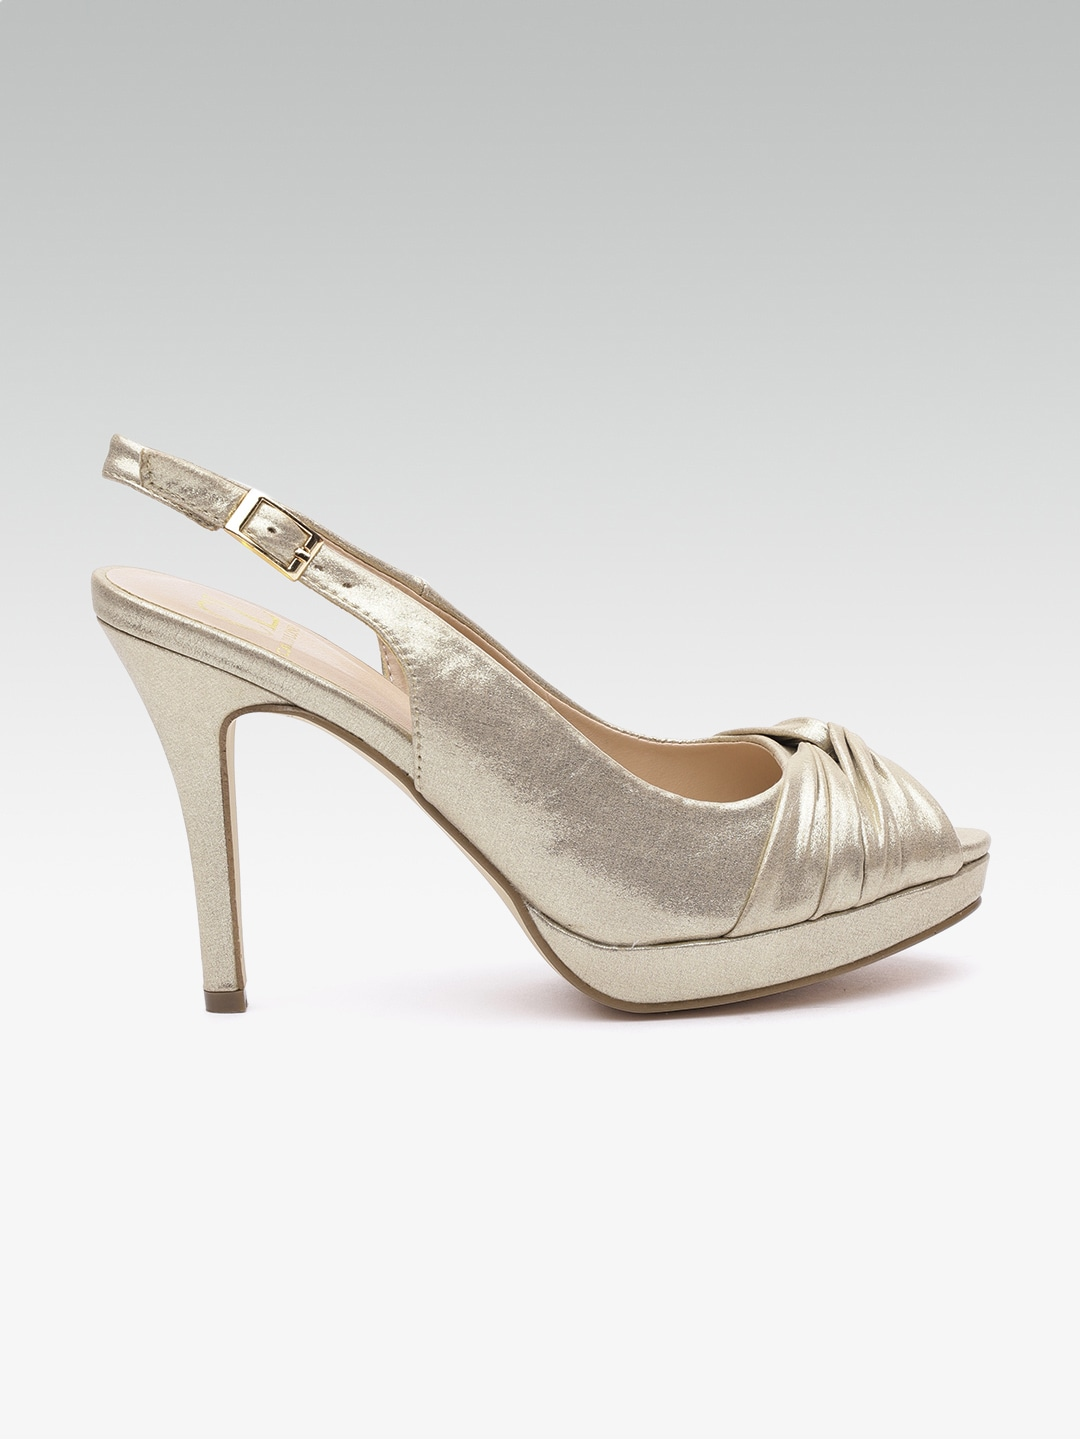 2fa3f9d1b348 Mossimo Shoes - Buy Mossimo Shoes Online in India